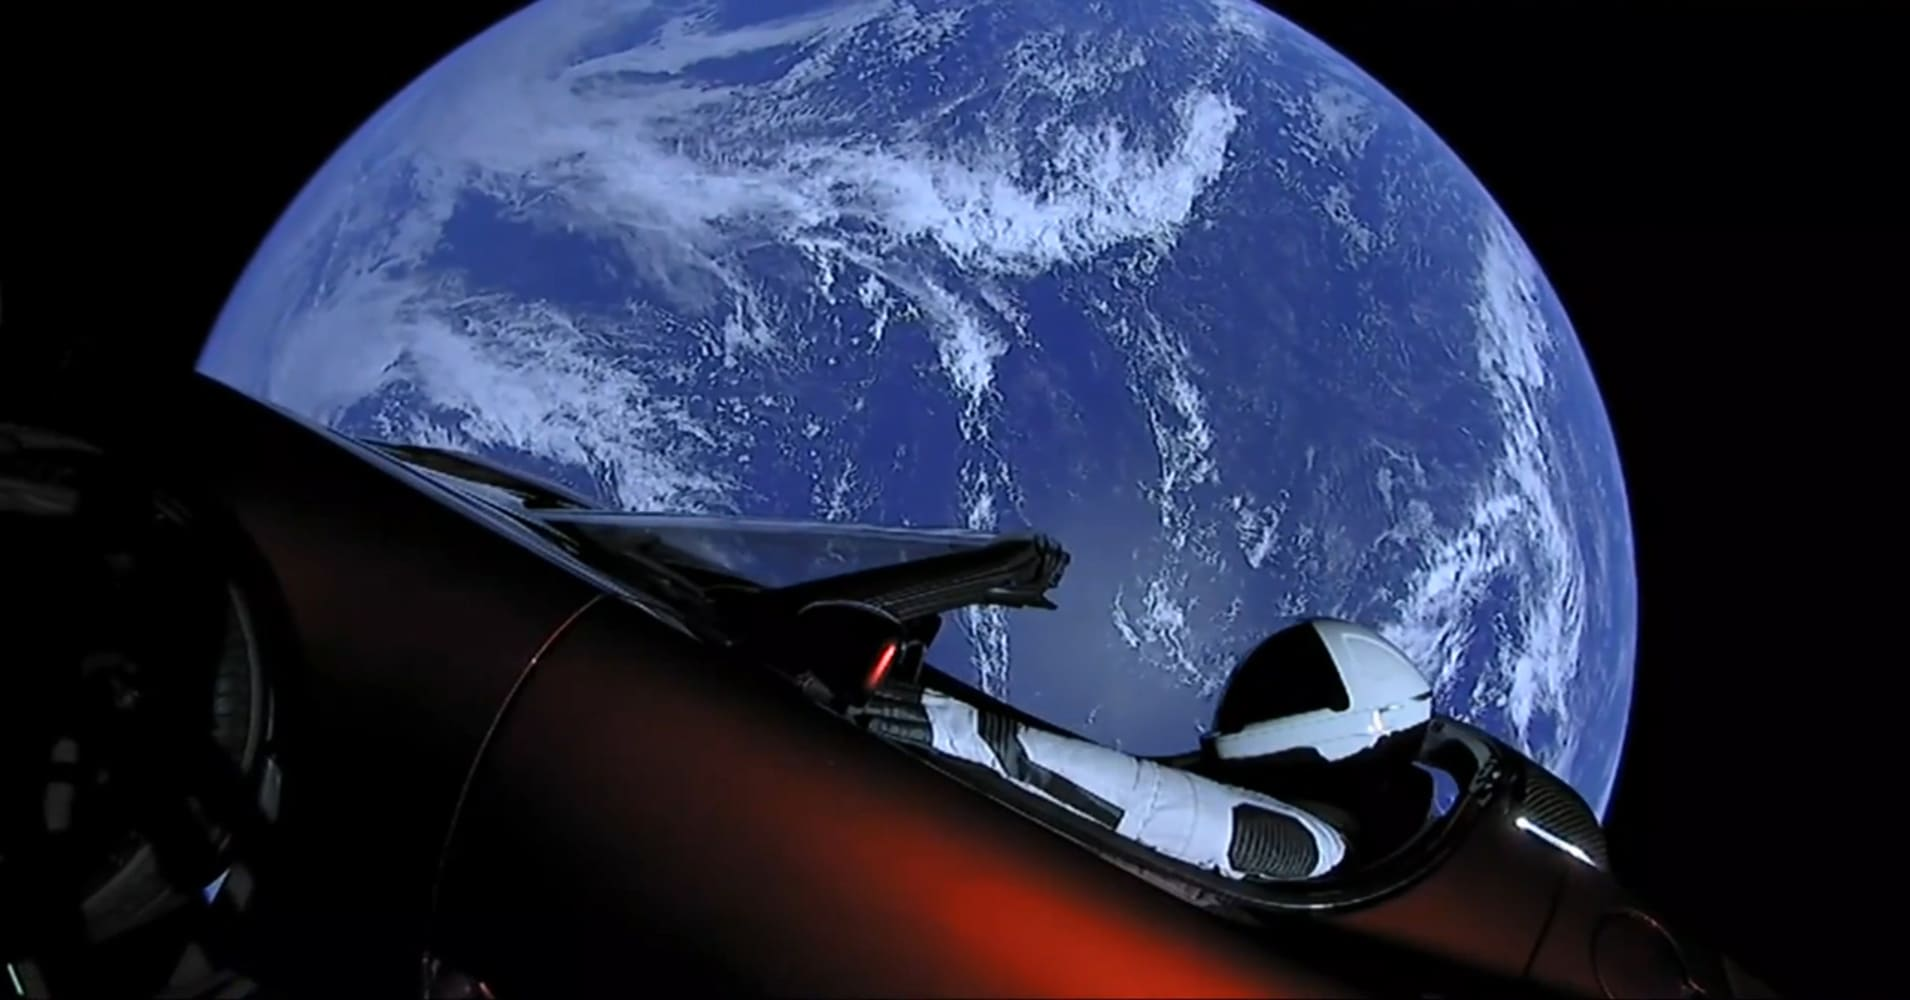 astronomers spotted elon musk s tesla through a telescope. Black Bedroom Furniture Sets. Home Design Ideas